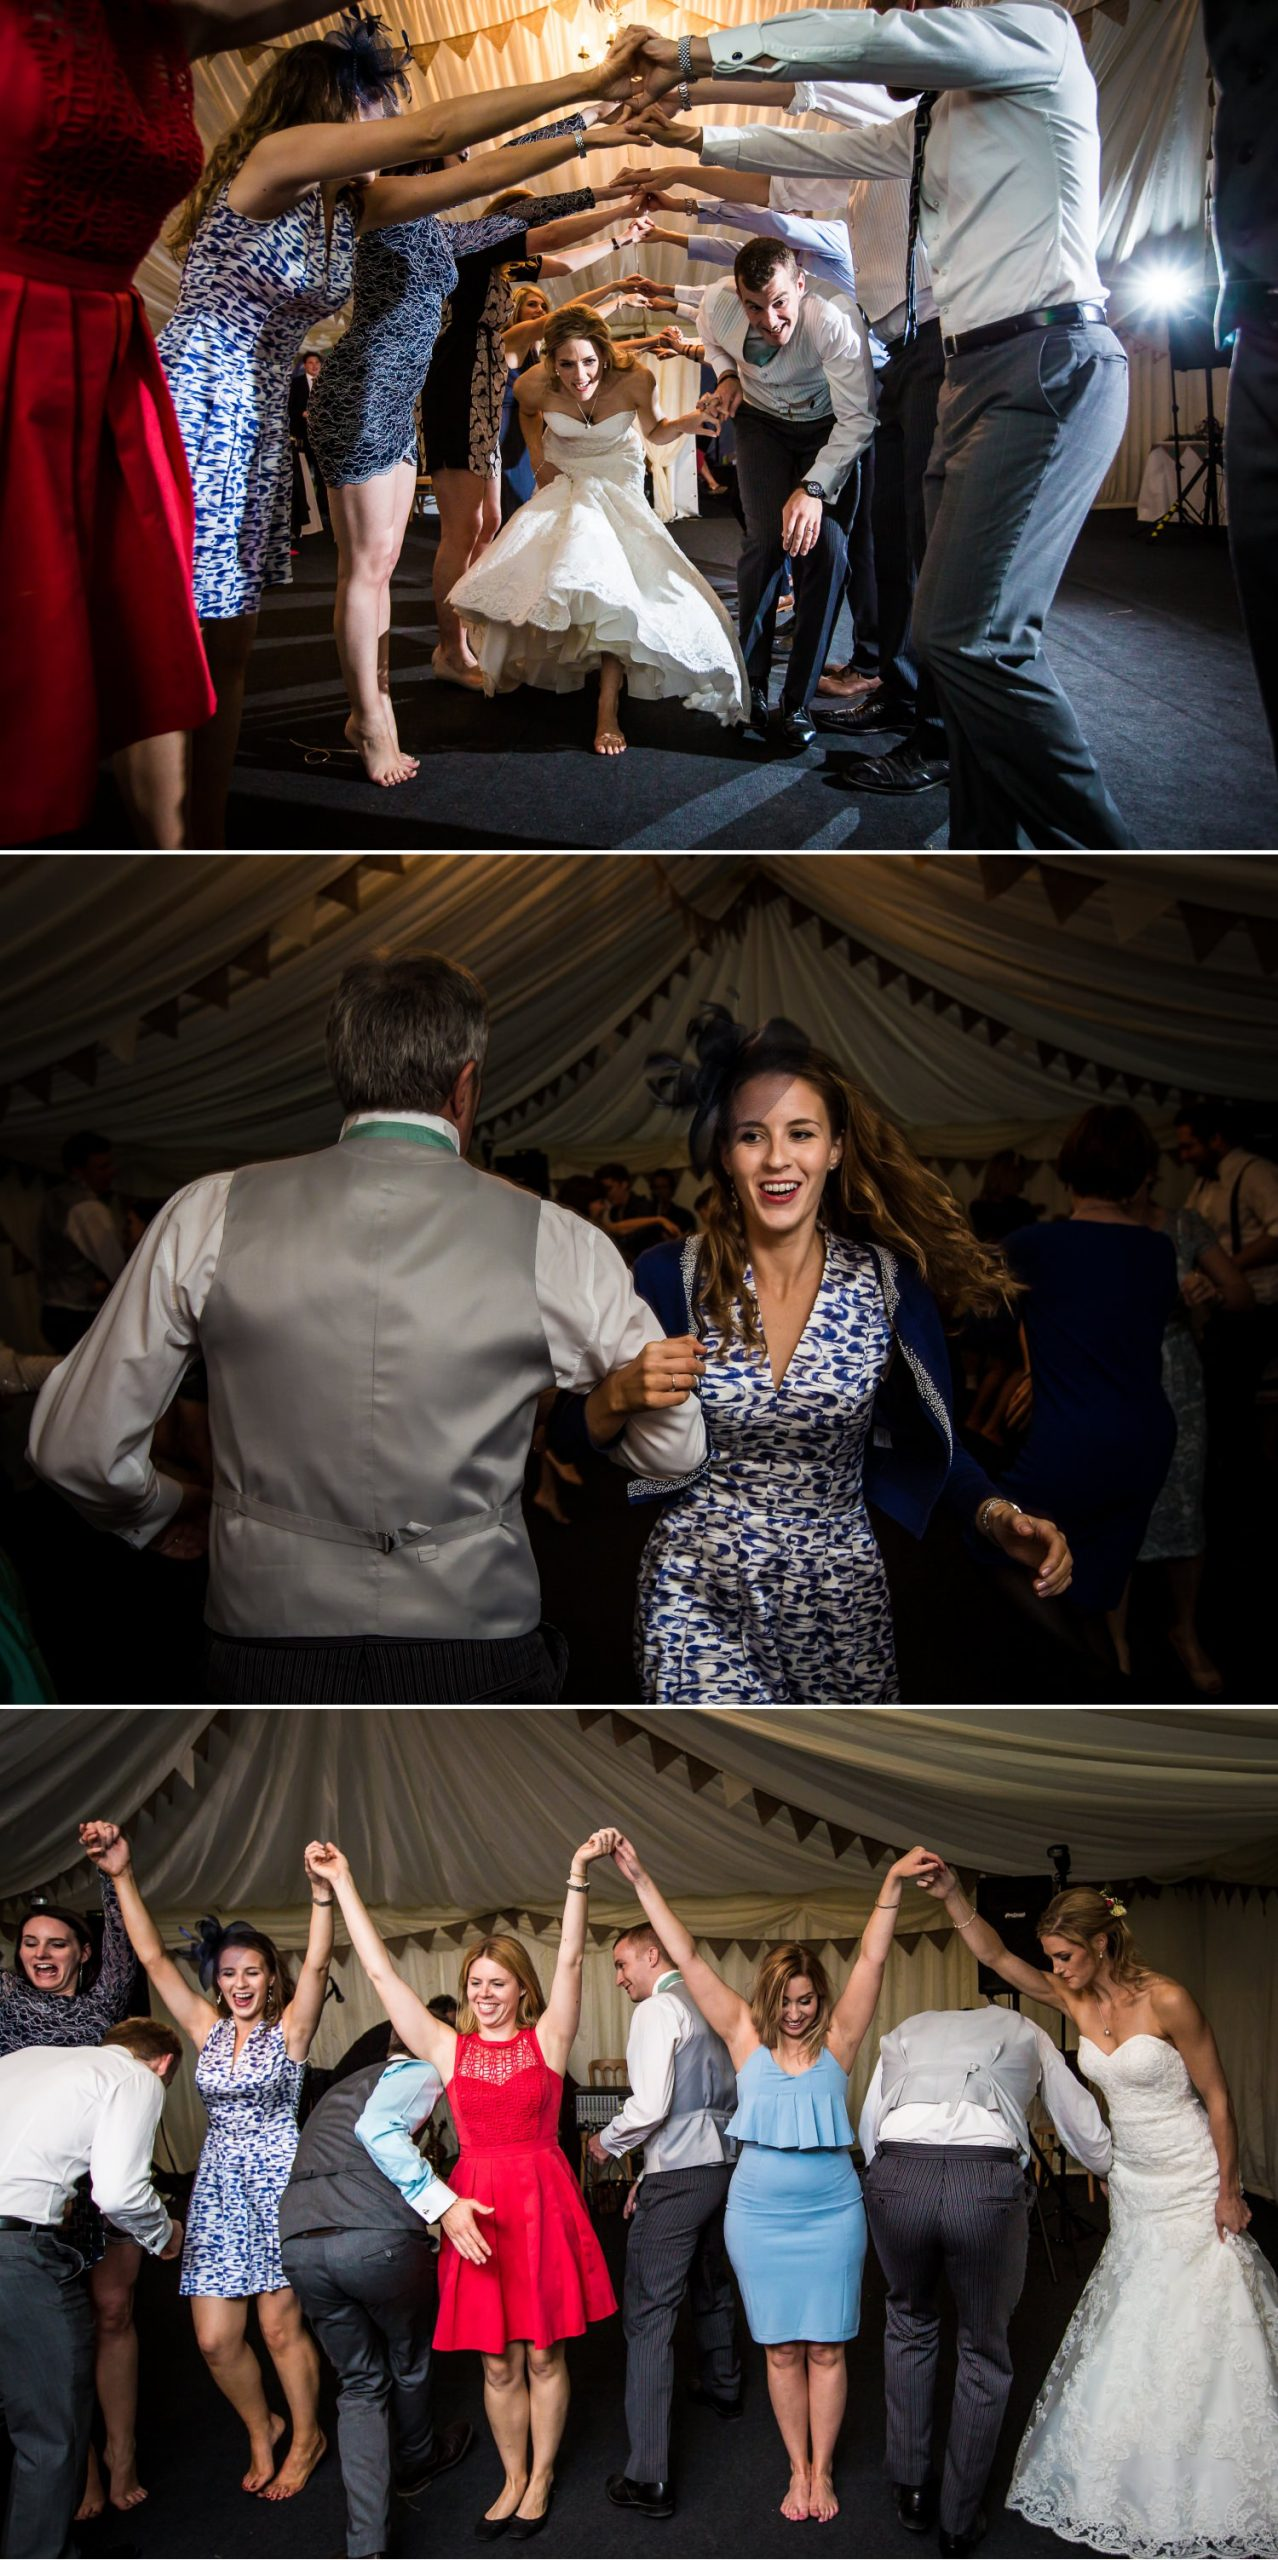 Country dancing wedding photograph at North Wales wedding venue, Pentre Mawr Country House